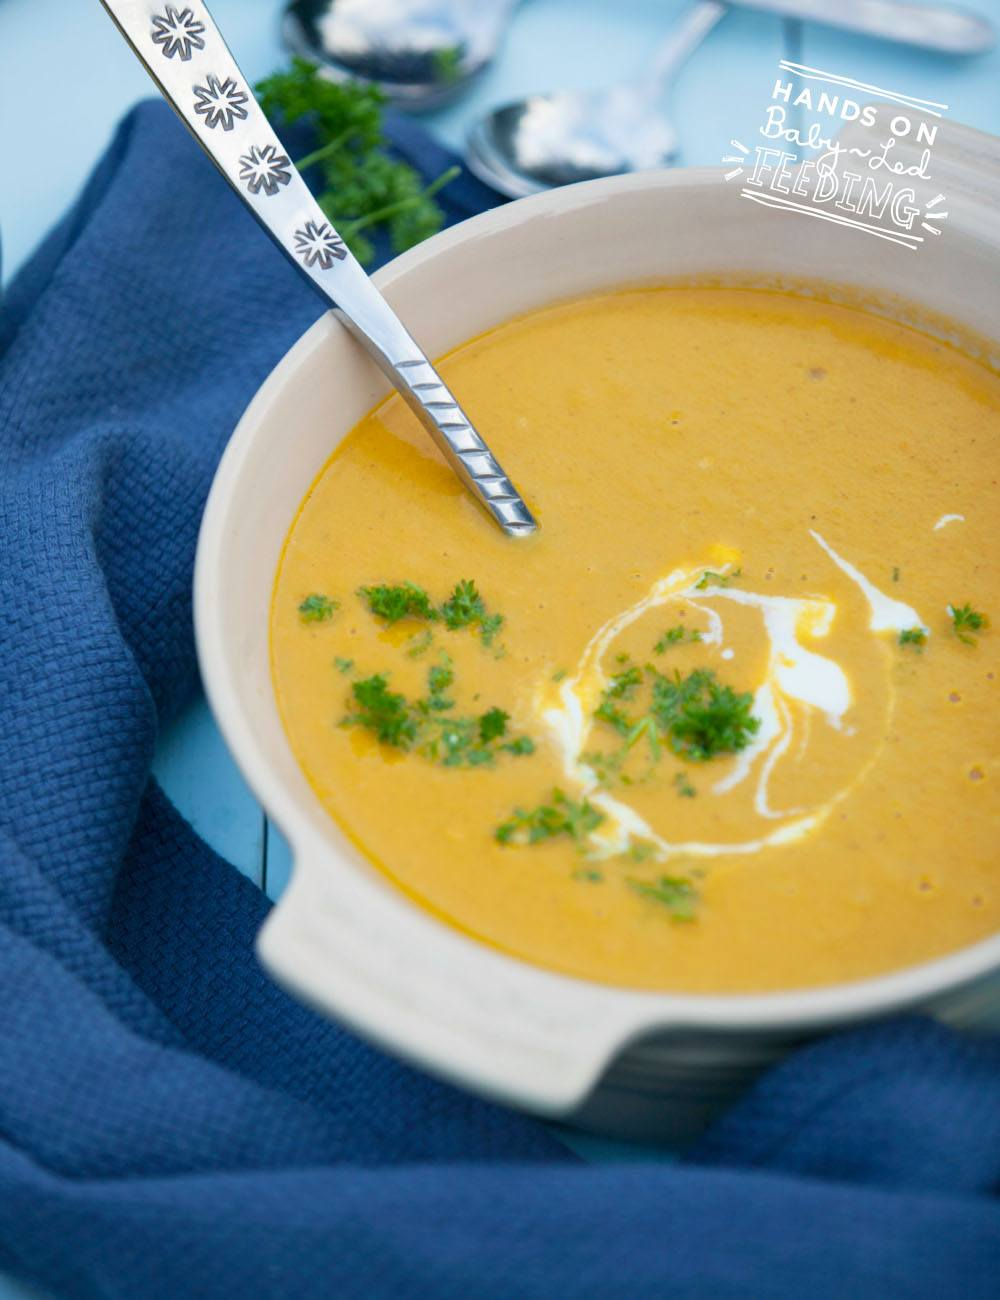 Curried Carrot and Coconut Soup especially for Baby Led Feeding Zoomed in soup image for recipe. A delicious soup packed with nutrients and perfect recipe for blw. Soup Lunch ideas for baby led weaning.